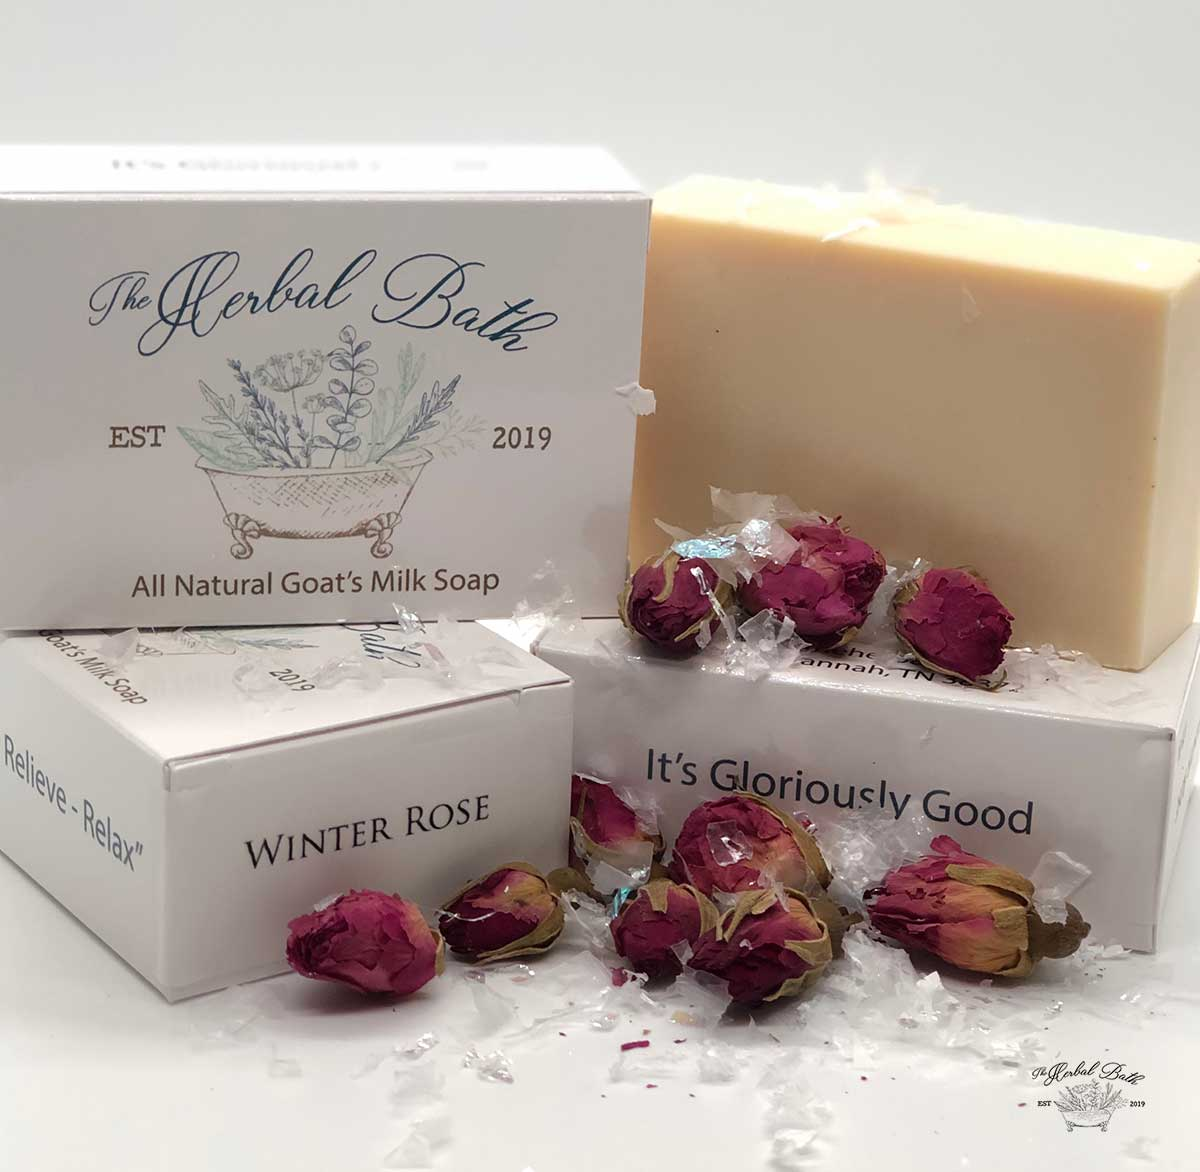 Winter Rose Soap